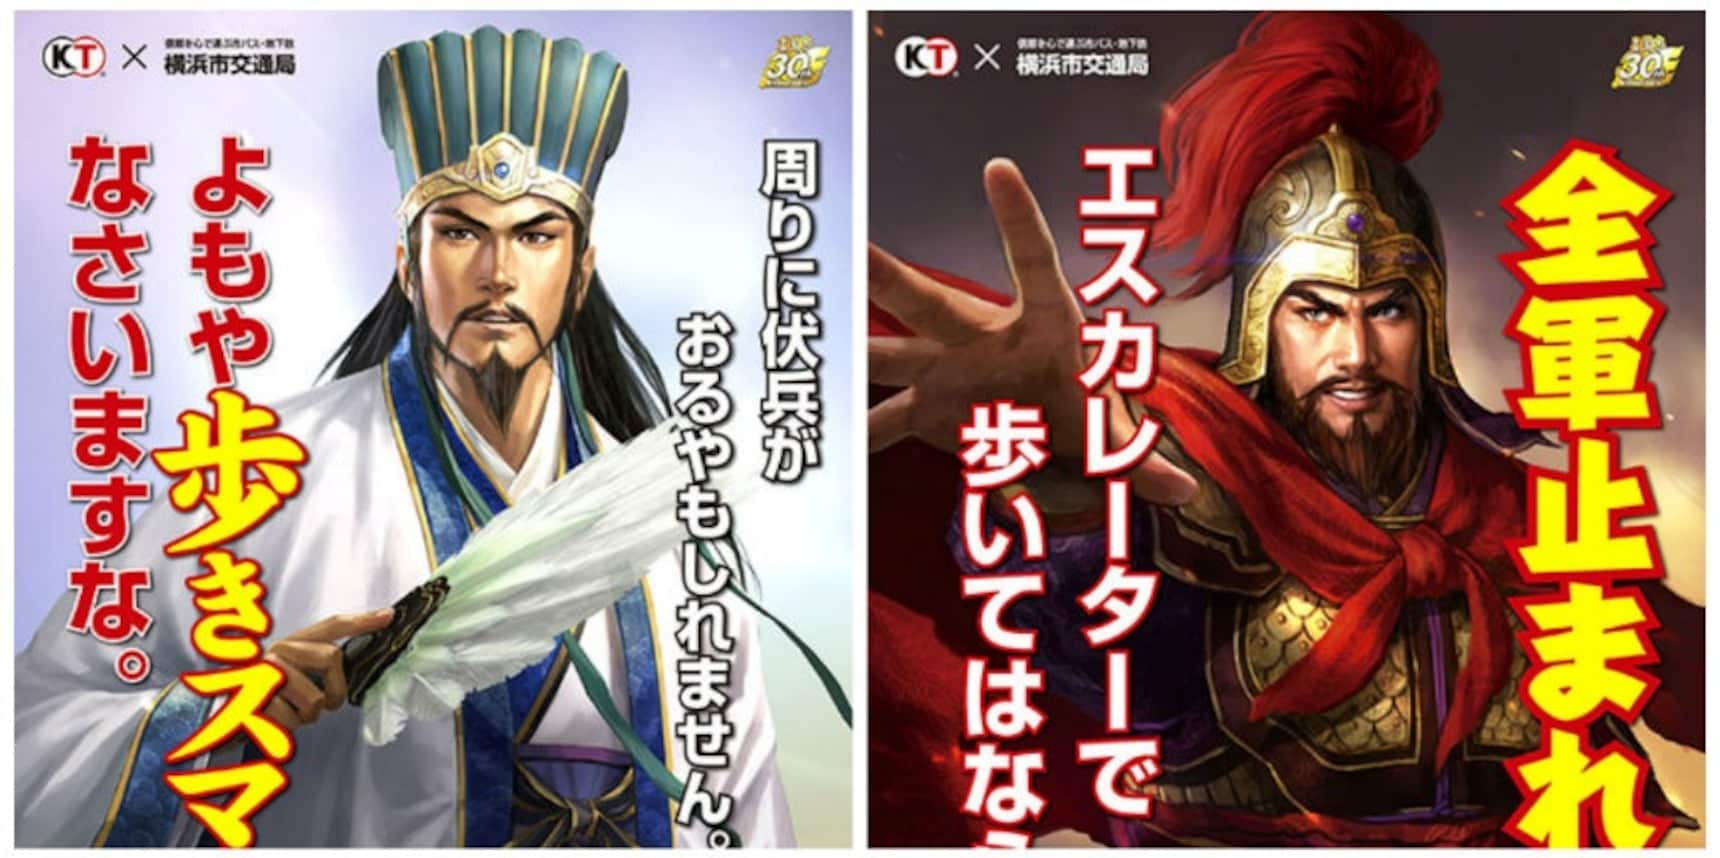 Heed These Warnings from the Dynasty Warriors